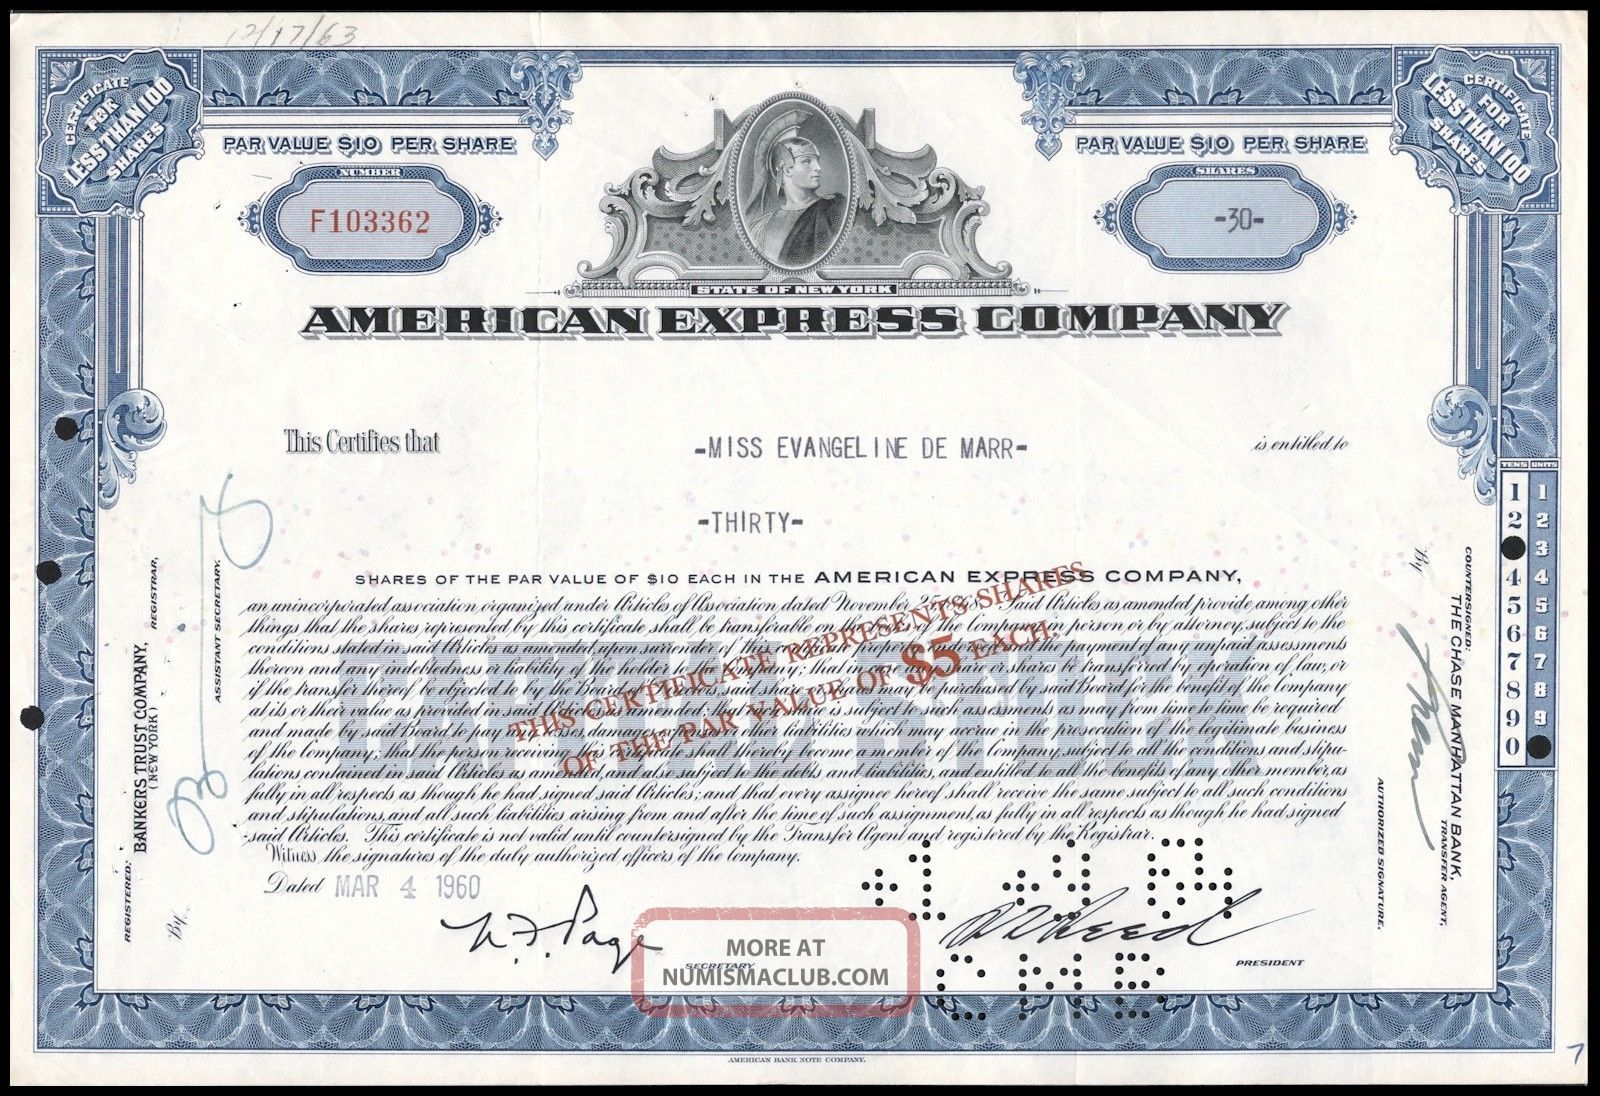 1960 American Express Company 30 Share Common Stock Certificate Blue Wysiwyg Vg, Stocks & Bonds, Scripophily photo